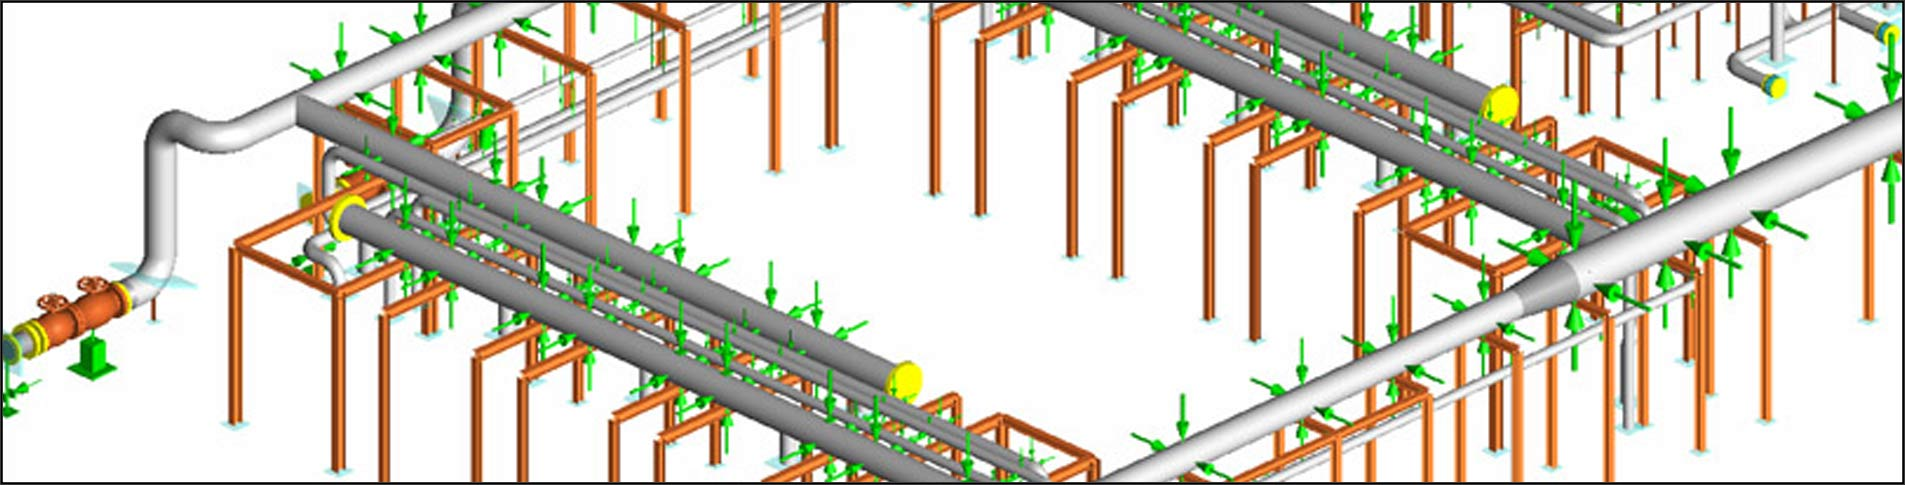 hight resolution of piping layout course